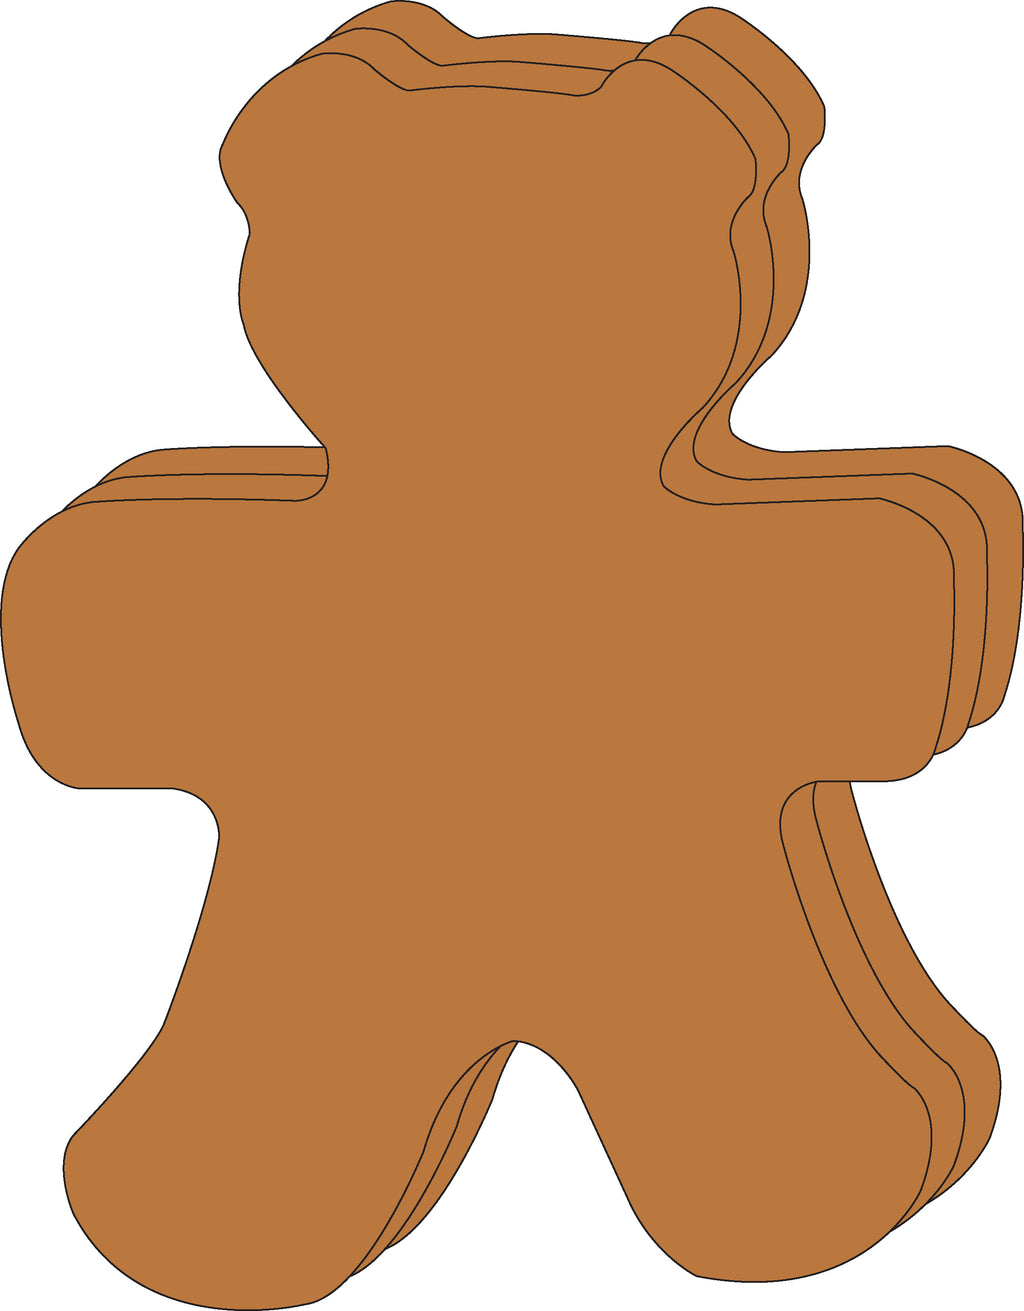 "8"" x 10"" Teddy Bear Single Color Super Cut-Outs, 15 cut-outs in a pack for Teddy Bear Picnics, Spring Crafts, Kids' School Craft Projects."